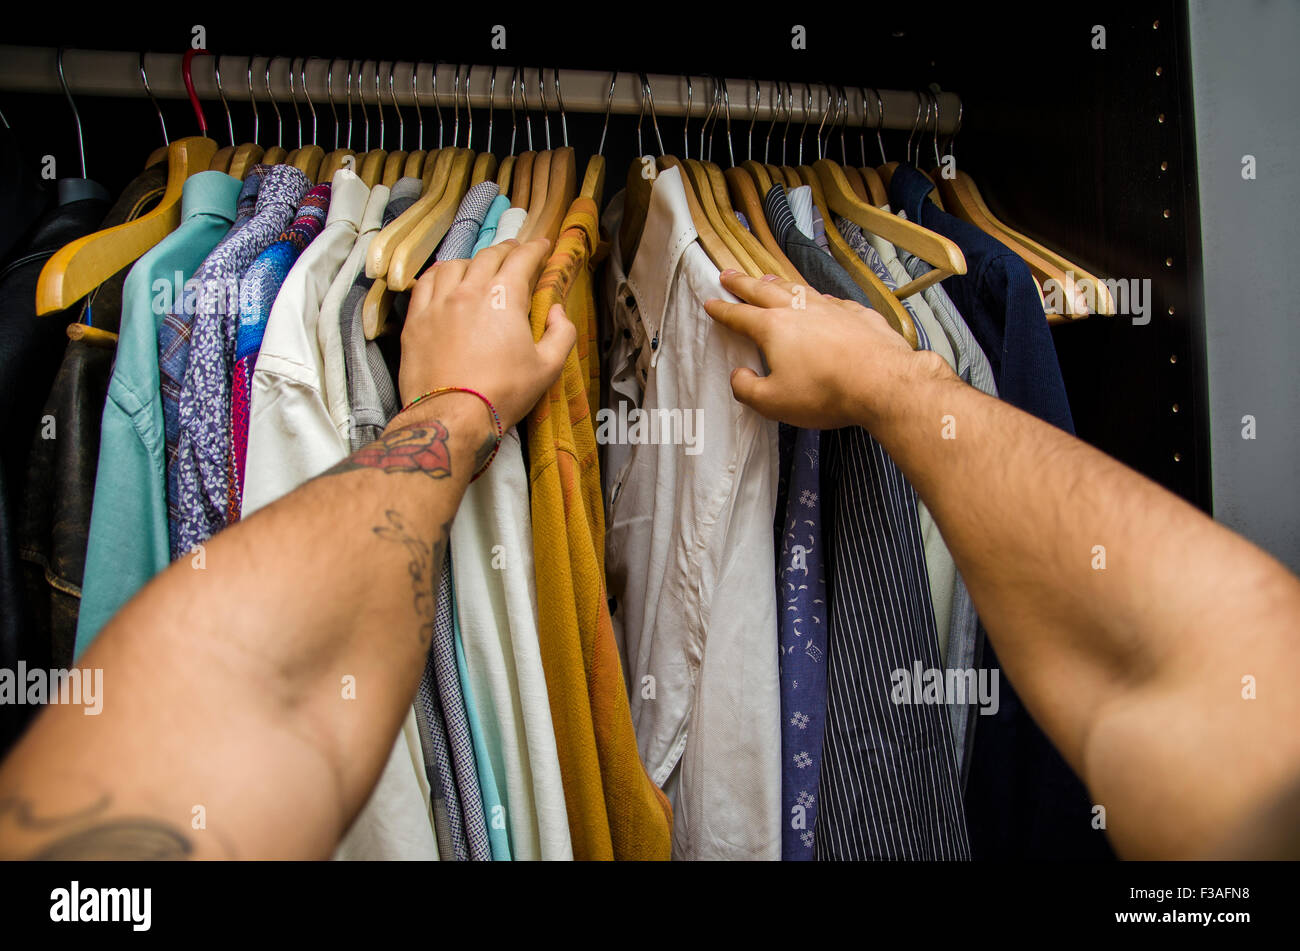 Man searching for a shirt hanging on the rail in his wardrobe, first person point of view looking down his arms. - Stock Image